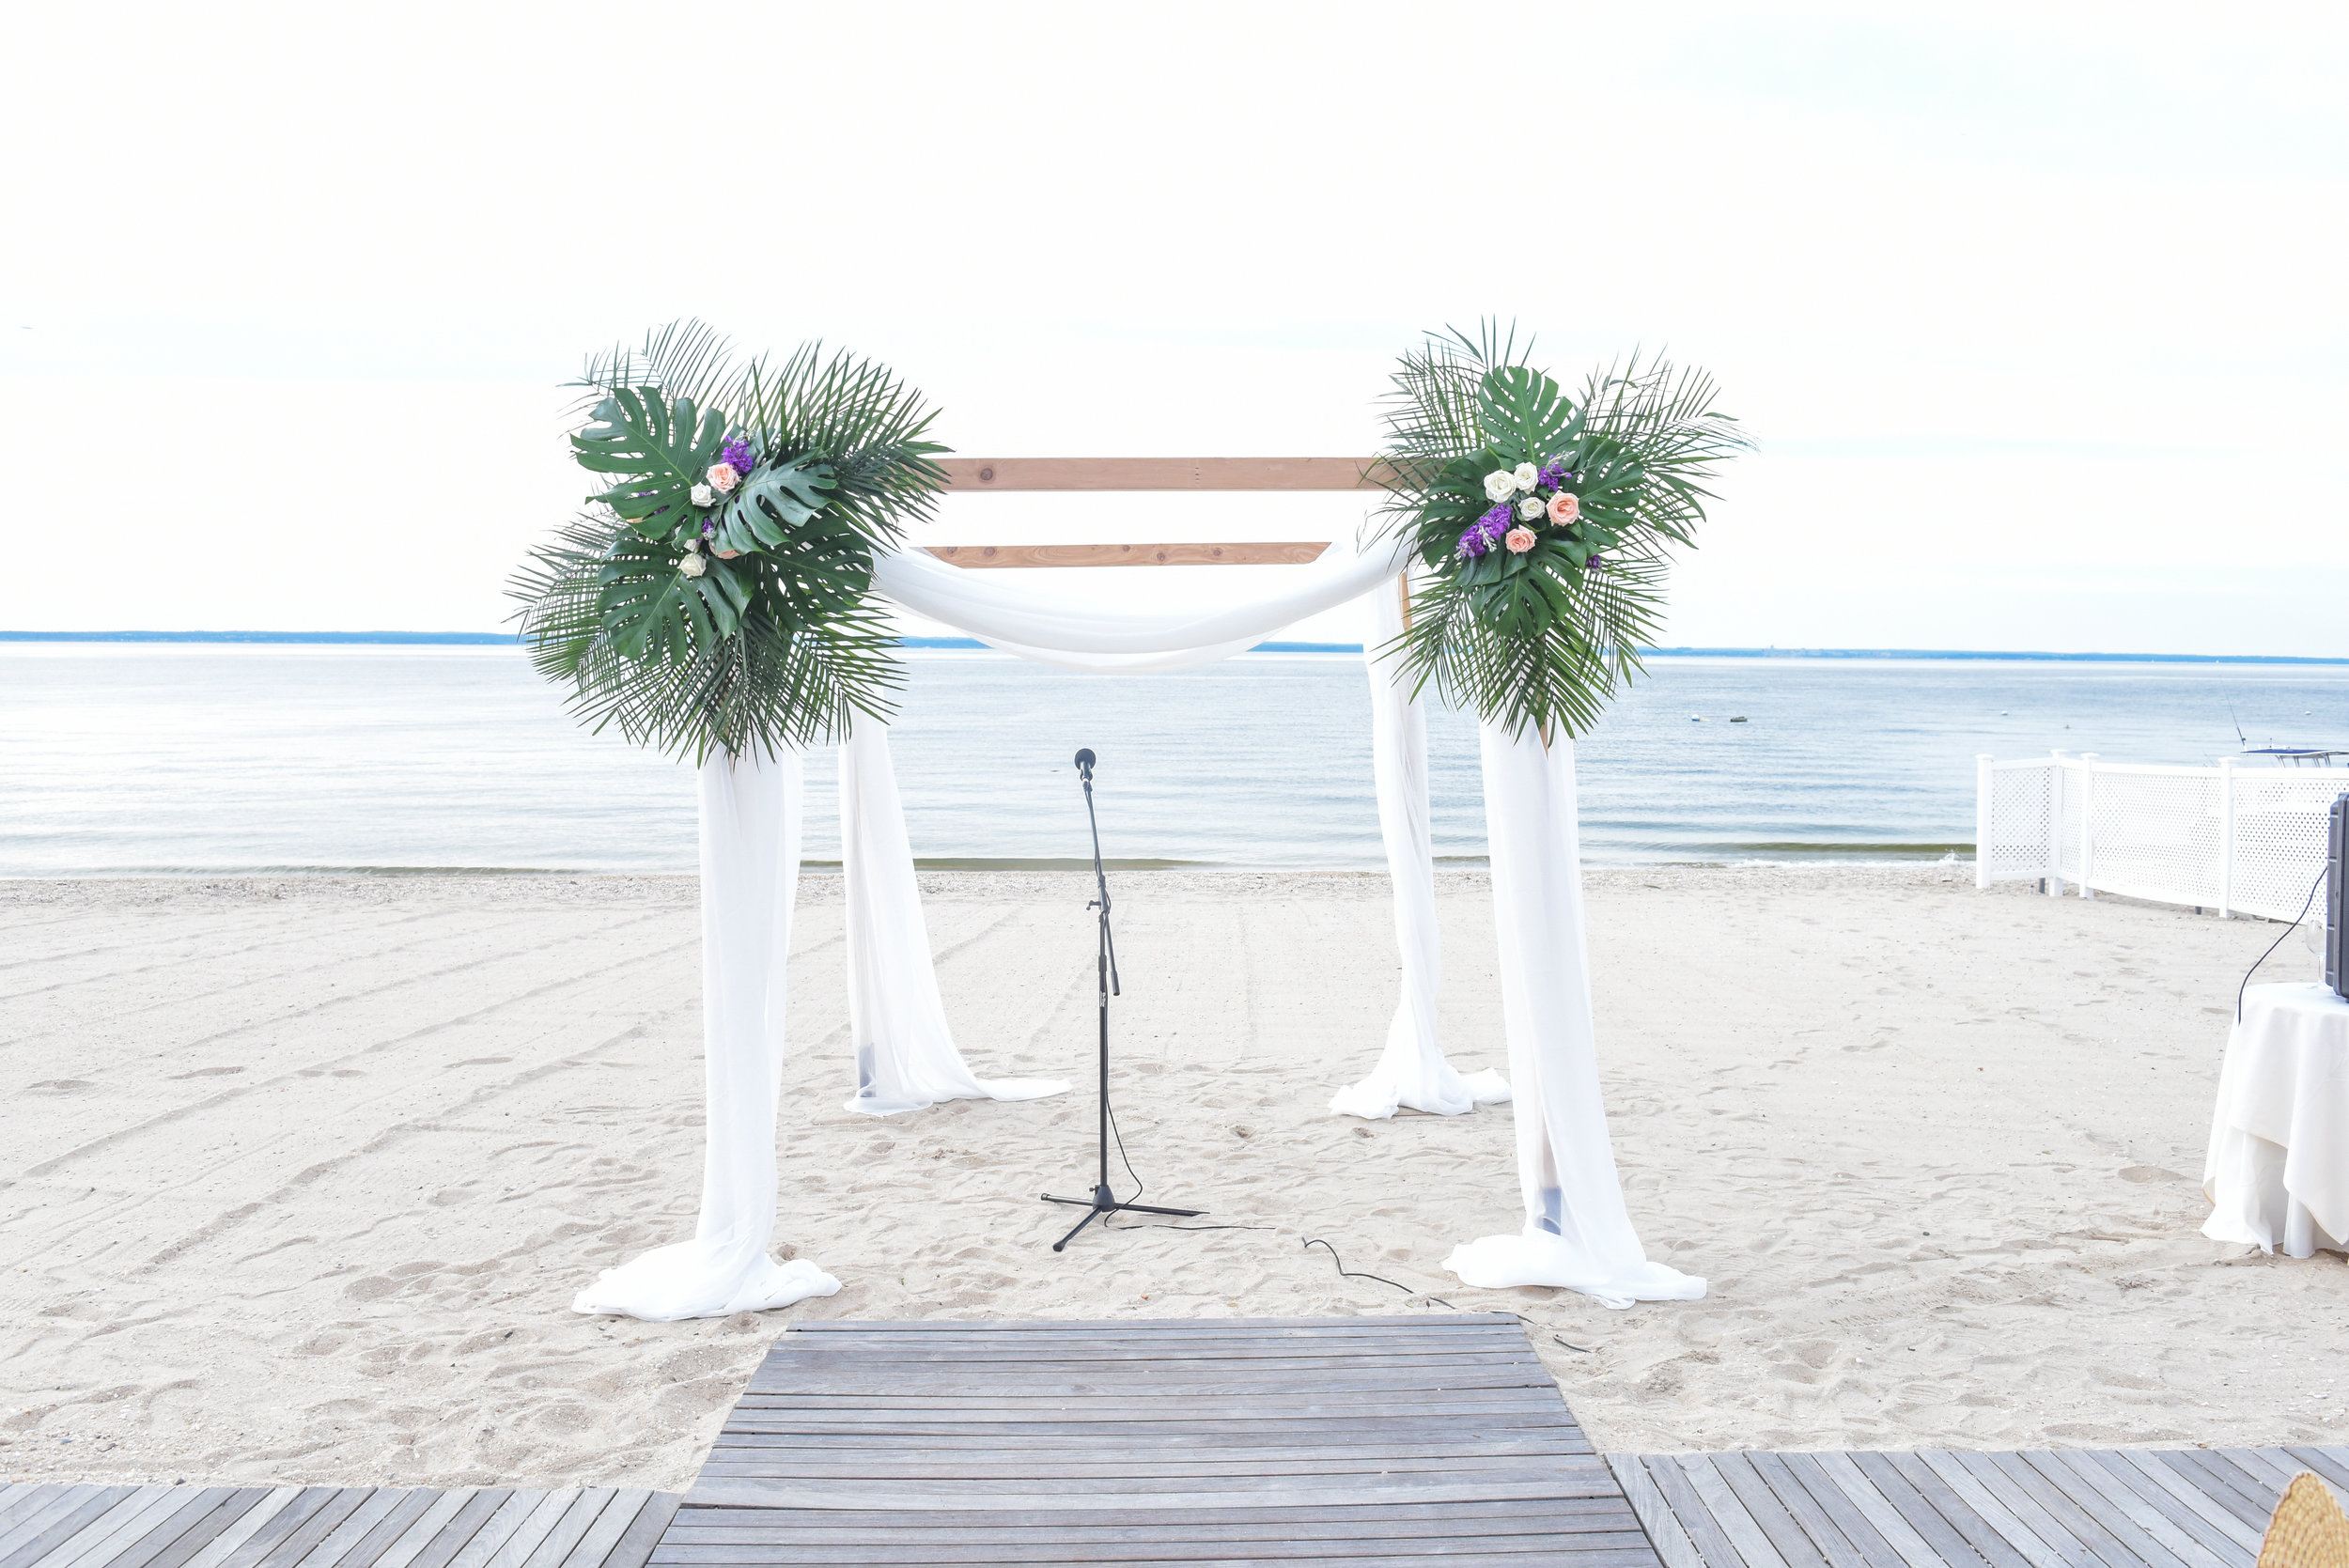 Backdrops/ Chuppahs - Backdrops can be used to add that extra wow factor to any decor space. Use them for weddings or any special occasion.We have economy, mid-range and luxury backdrop packages.Contact us for additional info.Starting @ $450